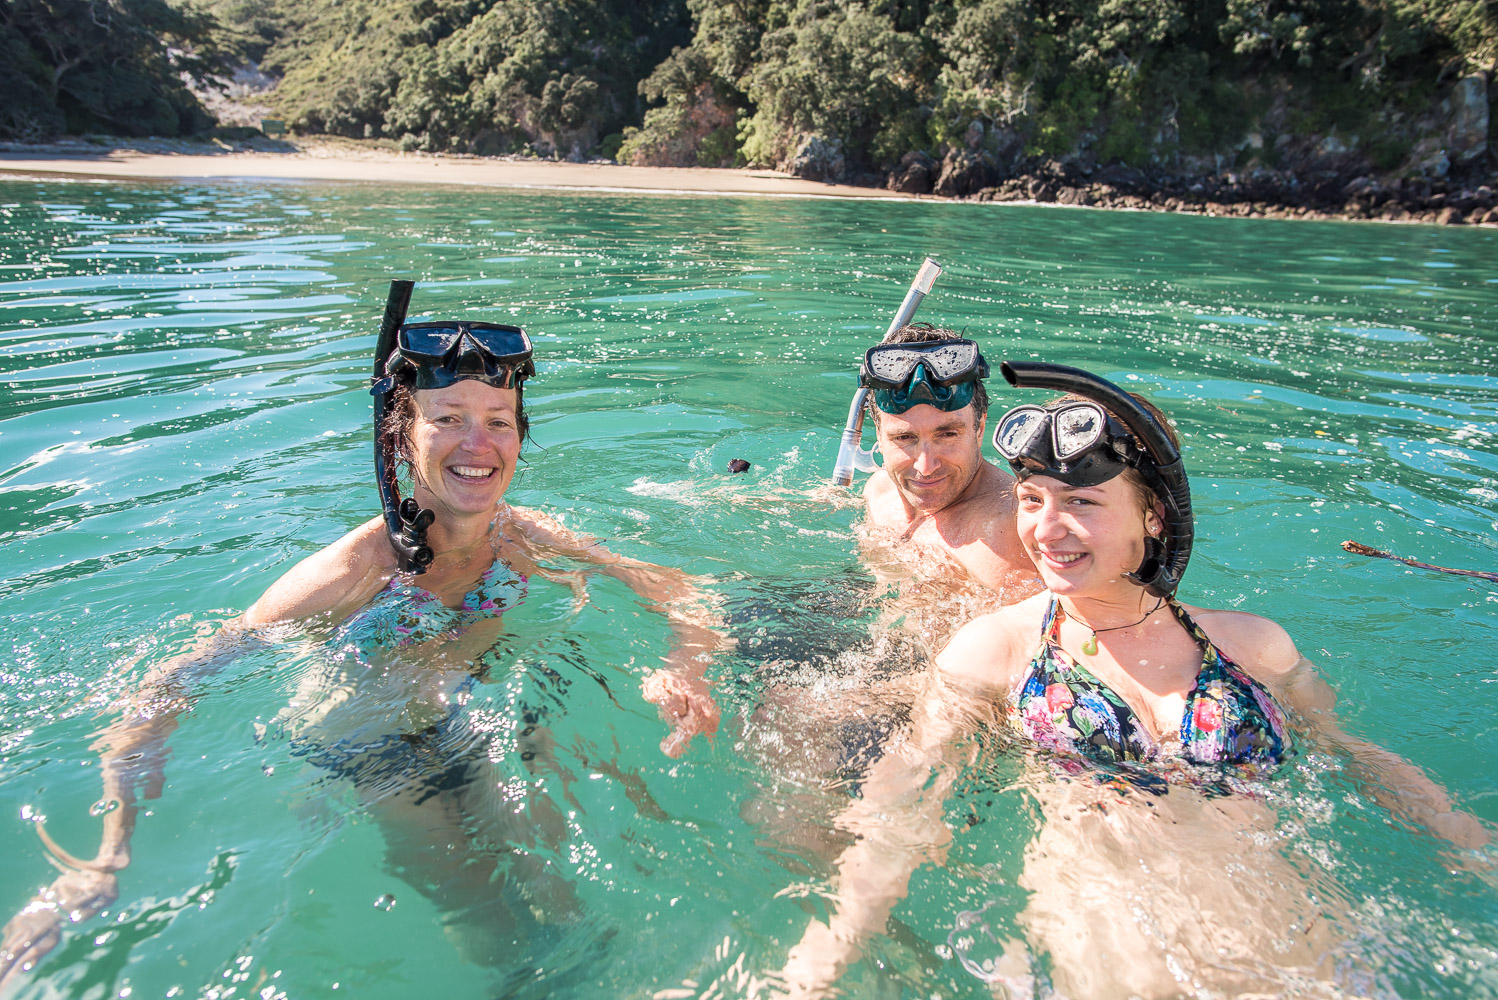 Whale Island Snorkelling Adventure   Snorkel Whale Island's pristine clear bays.   Read More